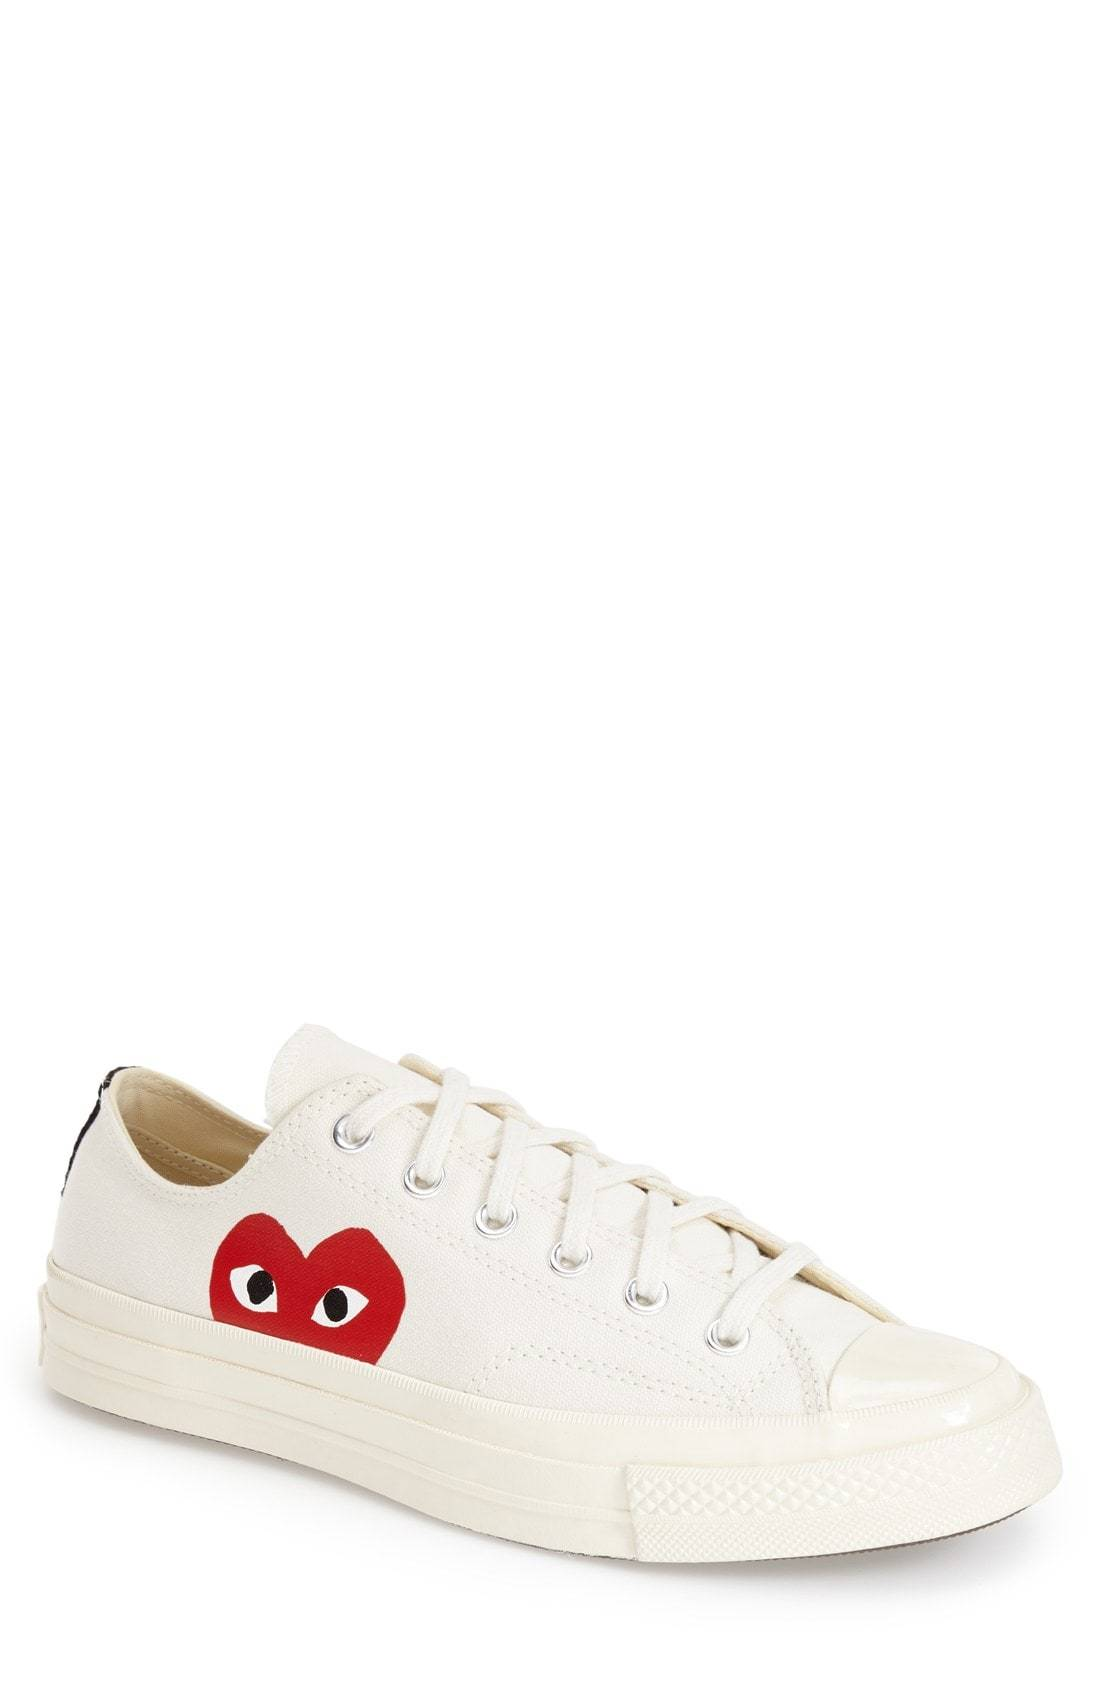 7b7b9fc699343 ... Comme des Garcons Play X Converse Chuck Taylor Low Top Sneaker